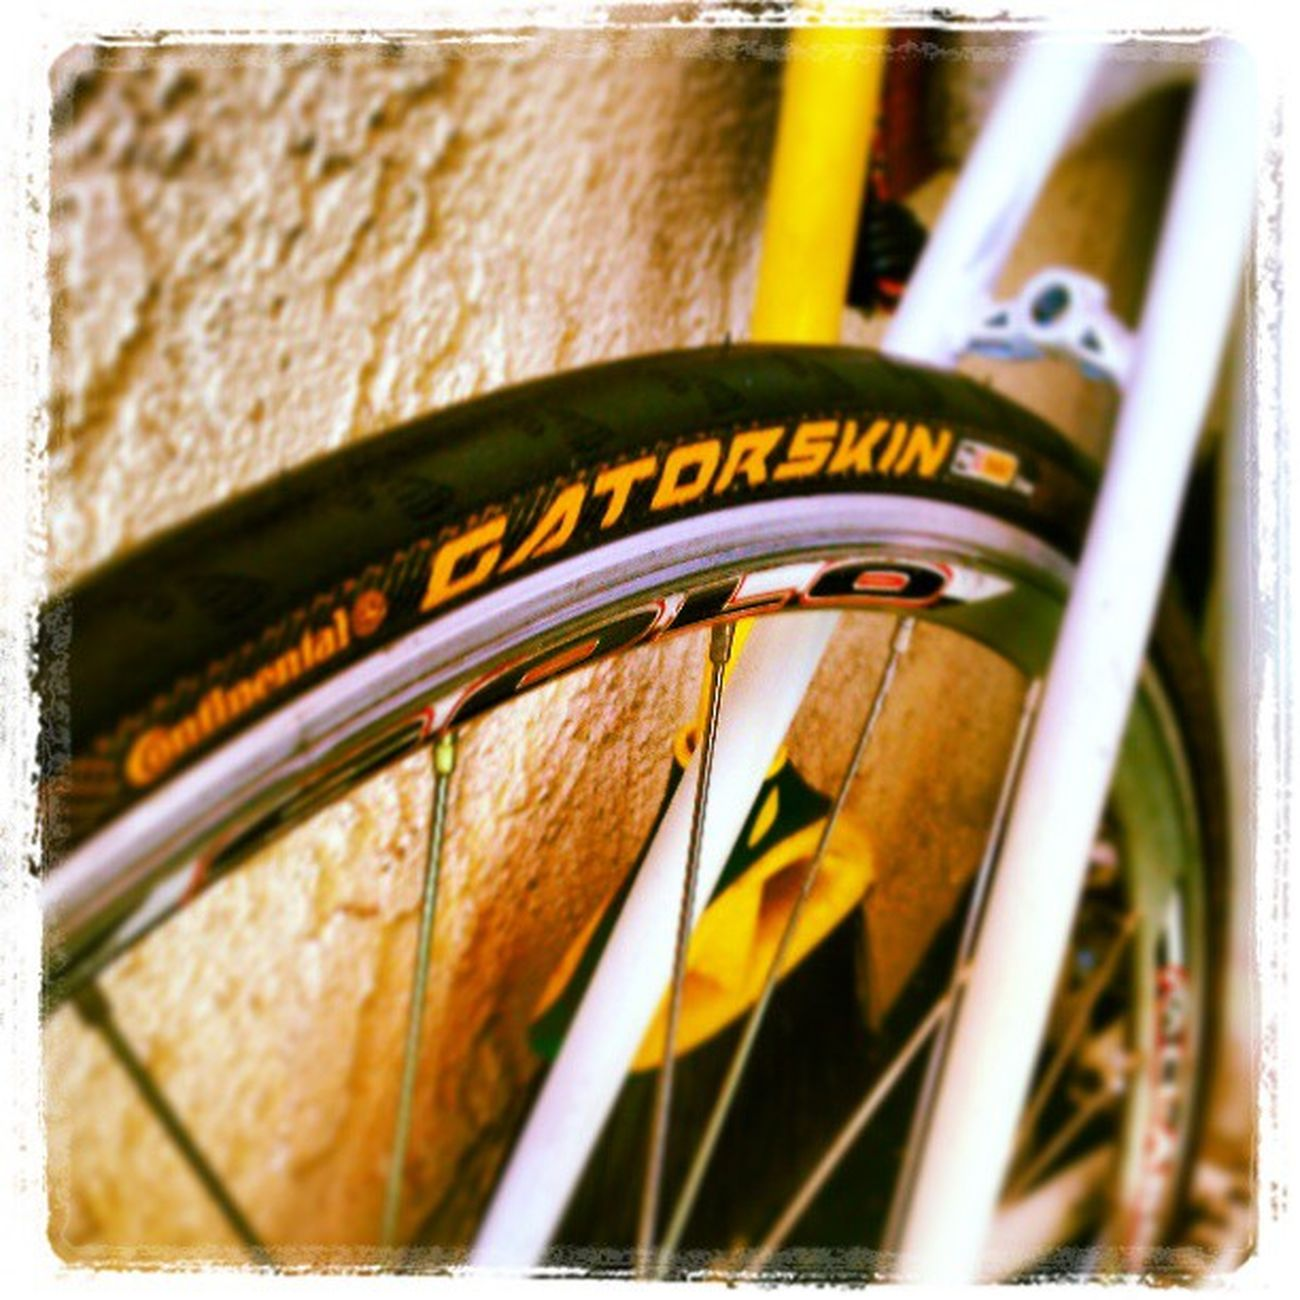 GATORSKIN #new #tire #fixedgear #continental #black #yellow #aclass #solo #sale #sickaf #instadaily Sale Yellow Solo New Black Tire Fixedgear Instadaily Sickaf Aclass Continental